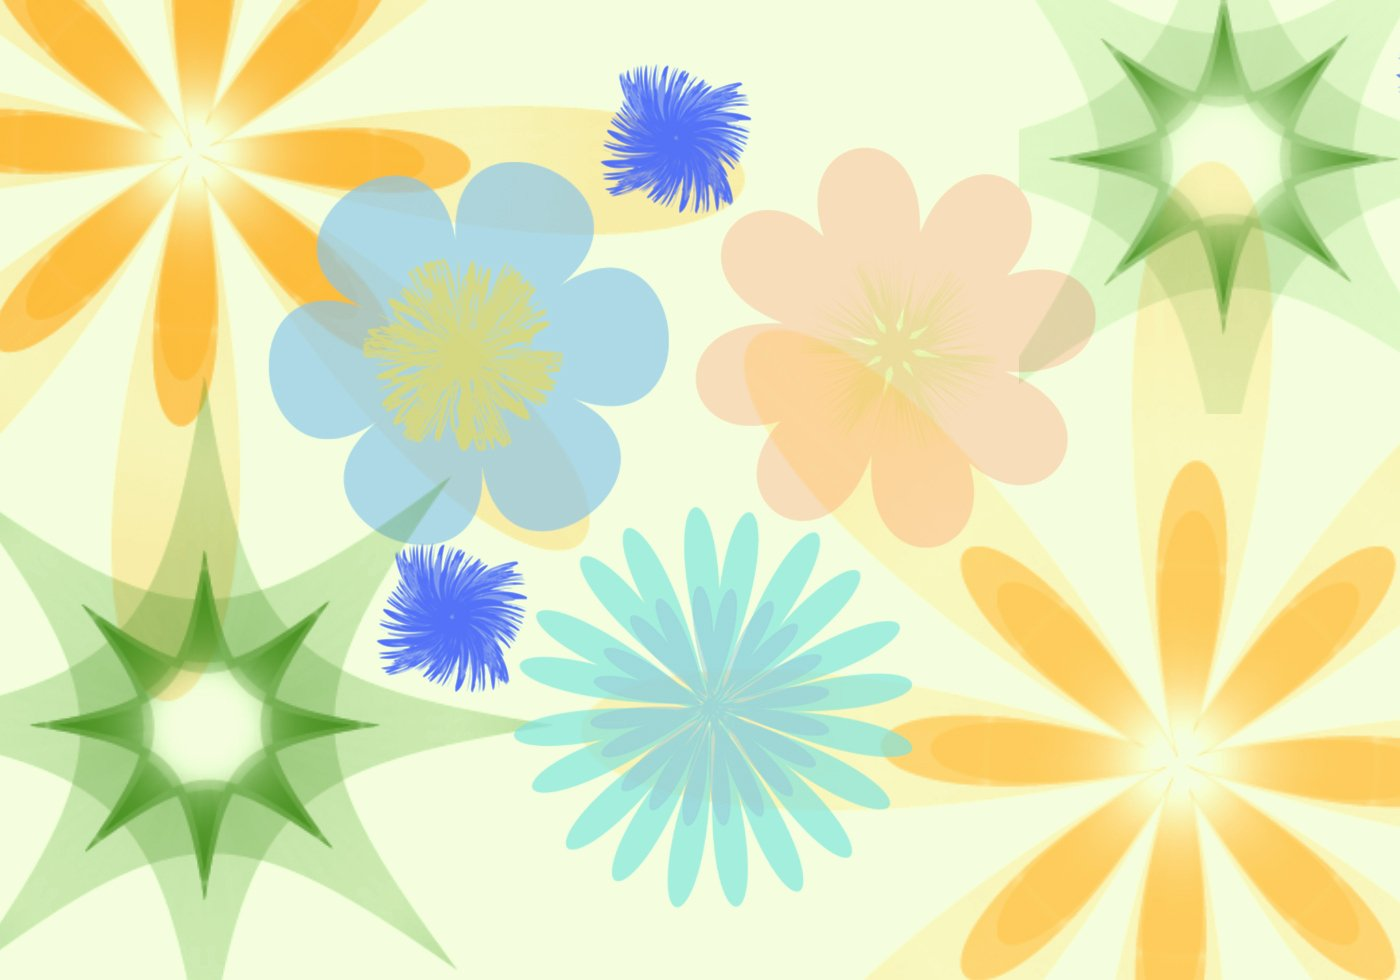 Abstract Pictures Of Flowers Elegant Abstract Flowers Free Shop Brushes at Brusheezy